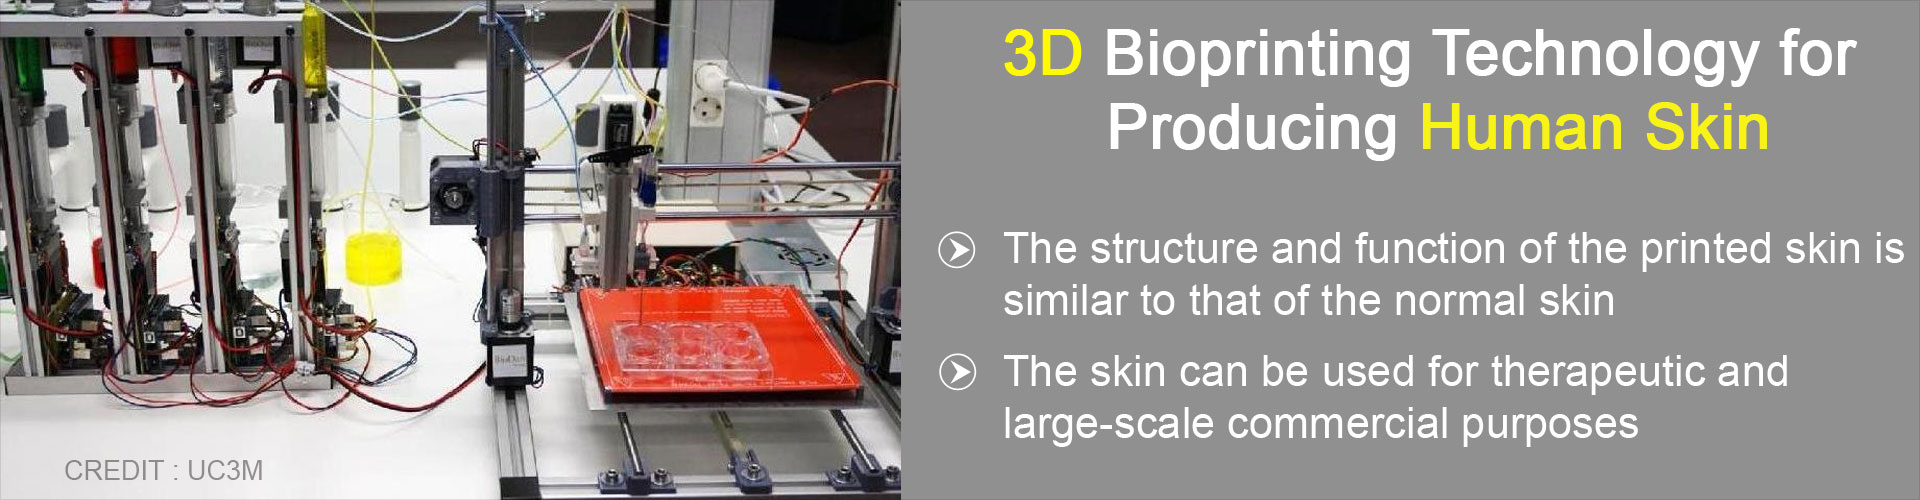 Human Skin Can Now be Printed